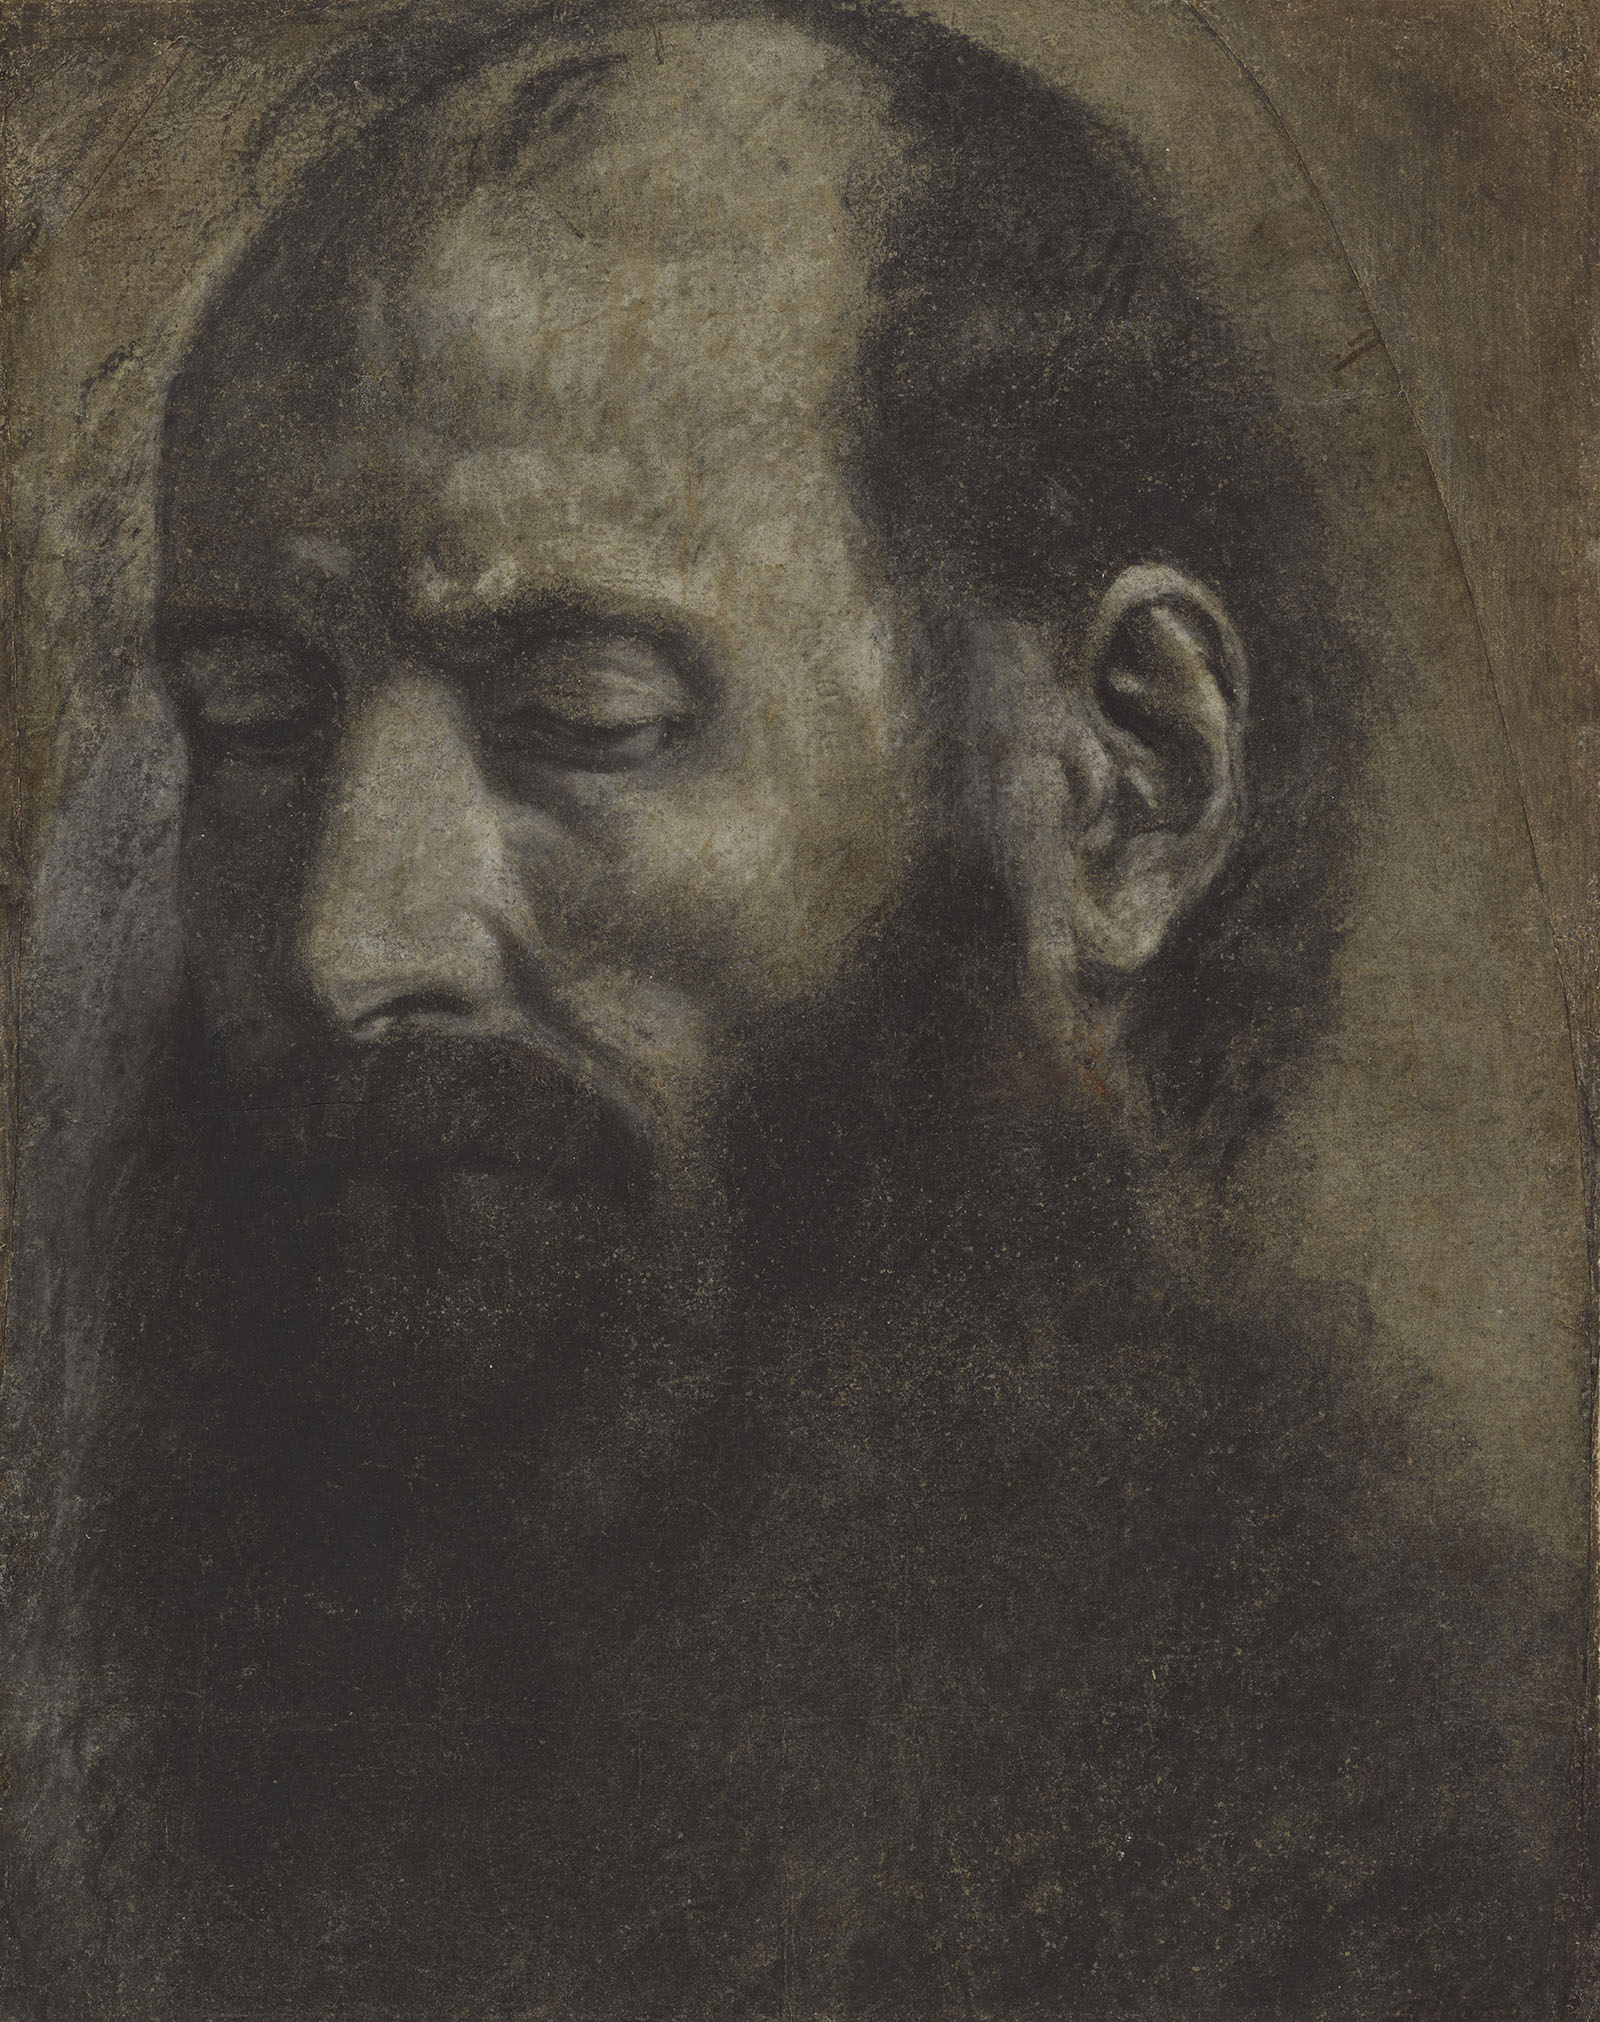 Sketch of a man with a long beard